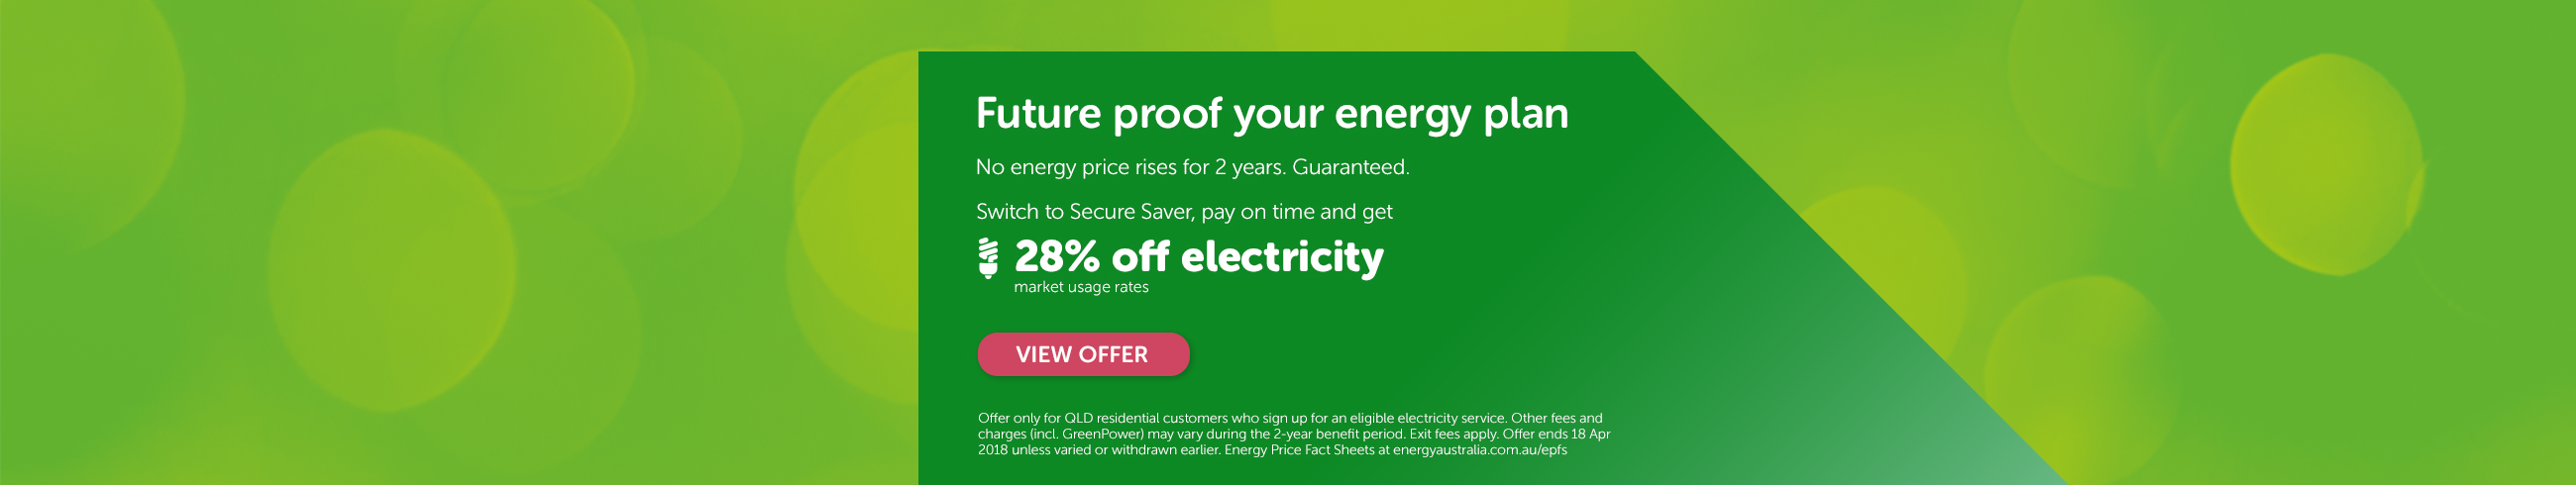 Future proof your energy plan